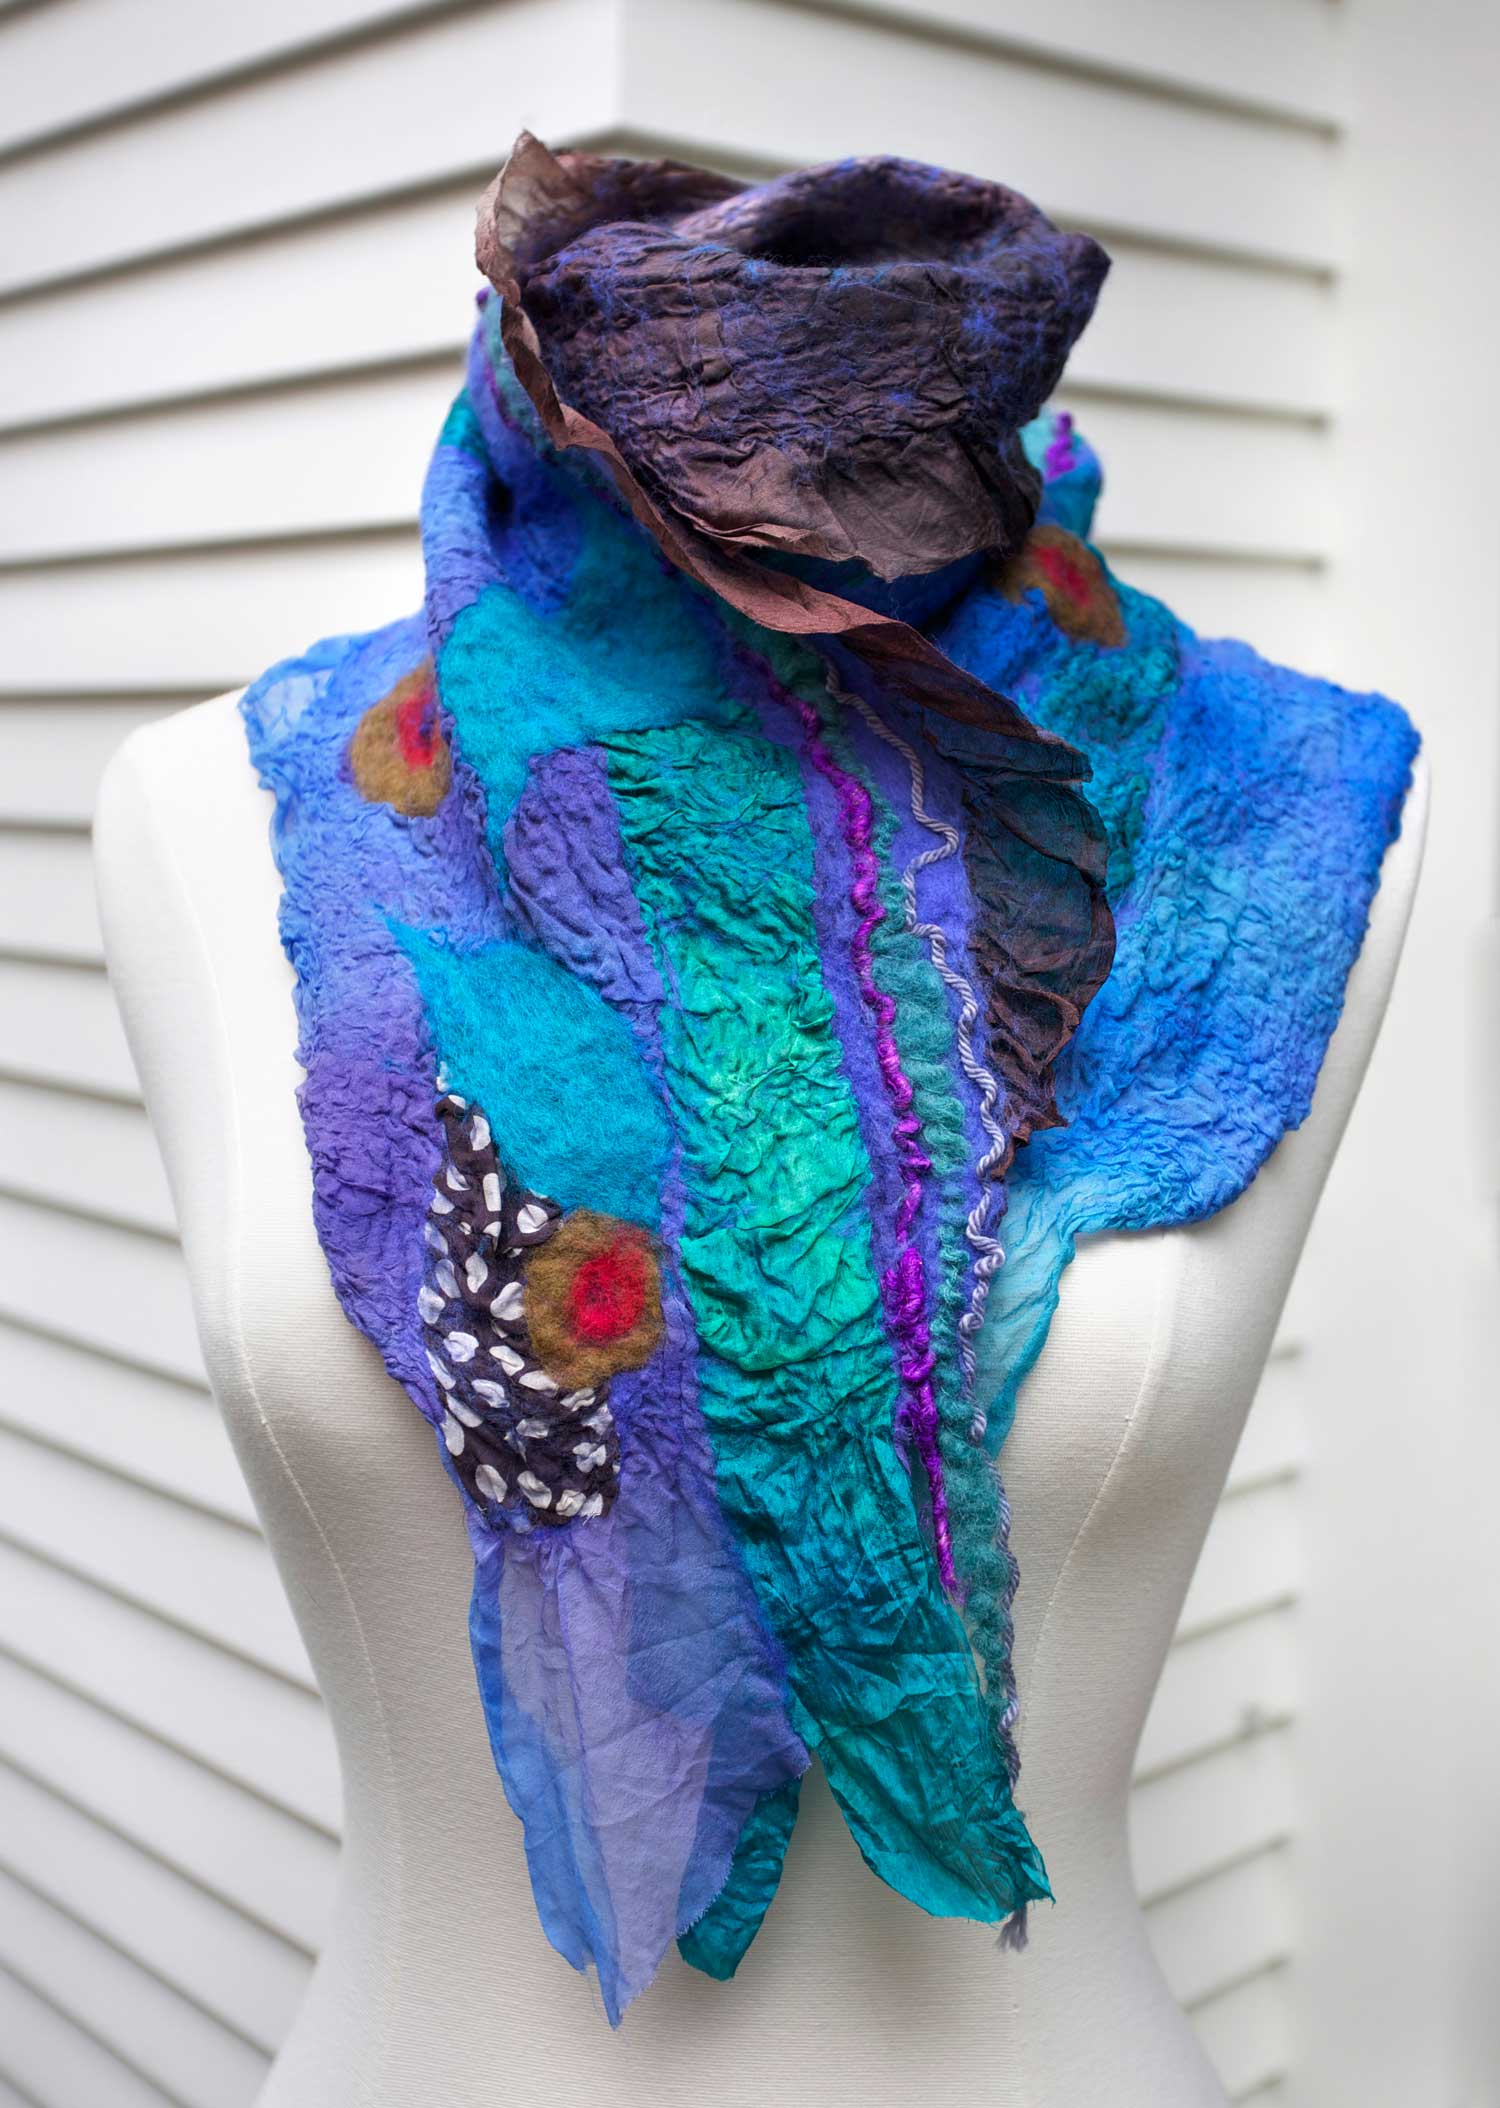 84_ArtVarMermaid_MermaidScarf_rgb_opt_web.jpg